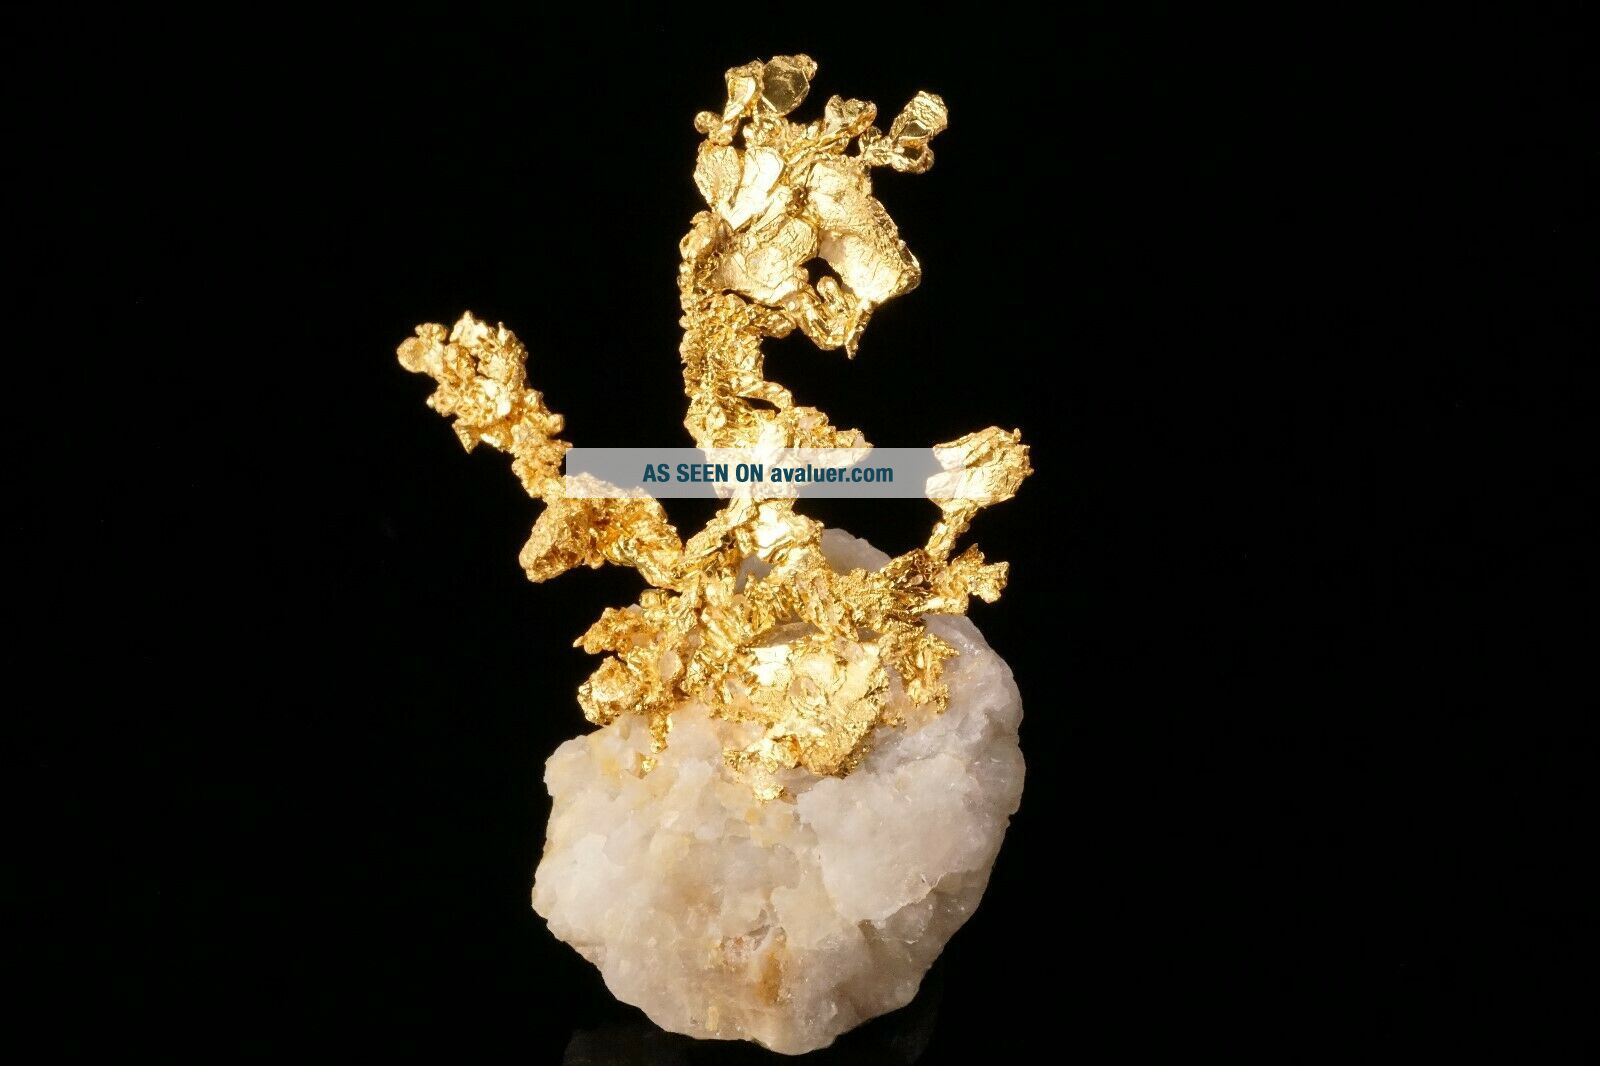 EXTRAORDINARY Native Gold Crystal Cluster on Quartz EAGLES NEST MINE,  CALIFORNIA